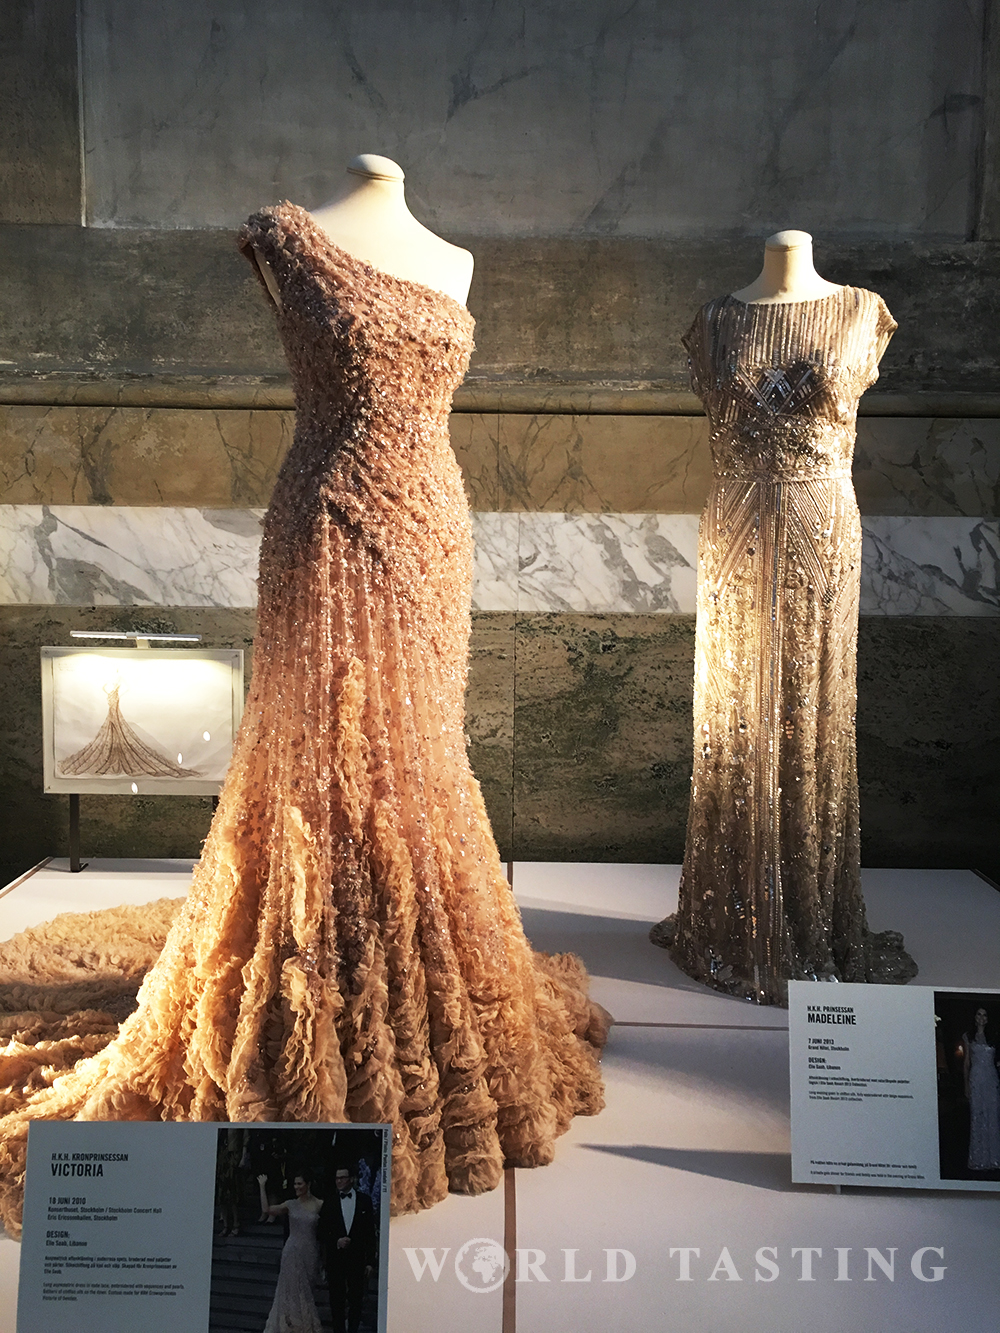 royal wedding dresses exhibition (kungliga brudklänningar) at the Royal Palace of Stockholm